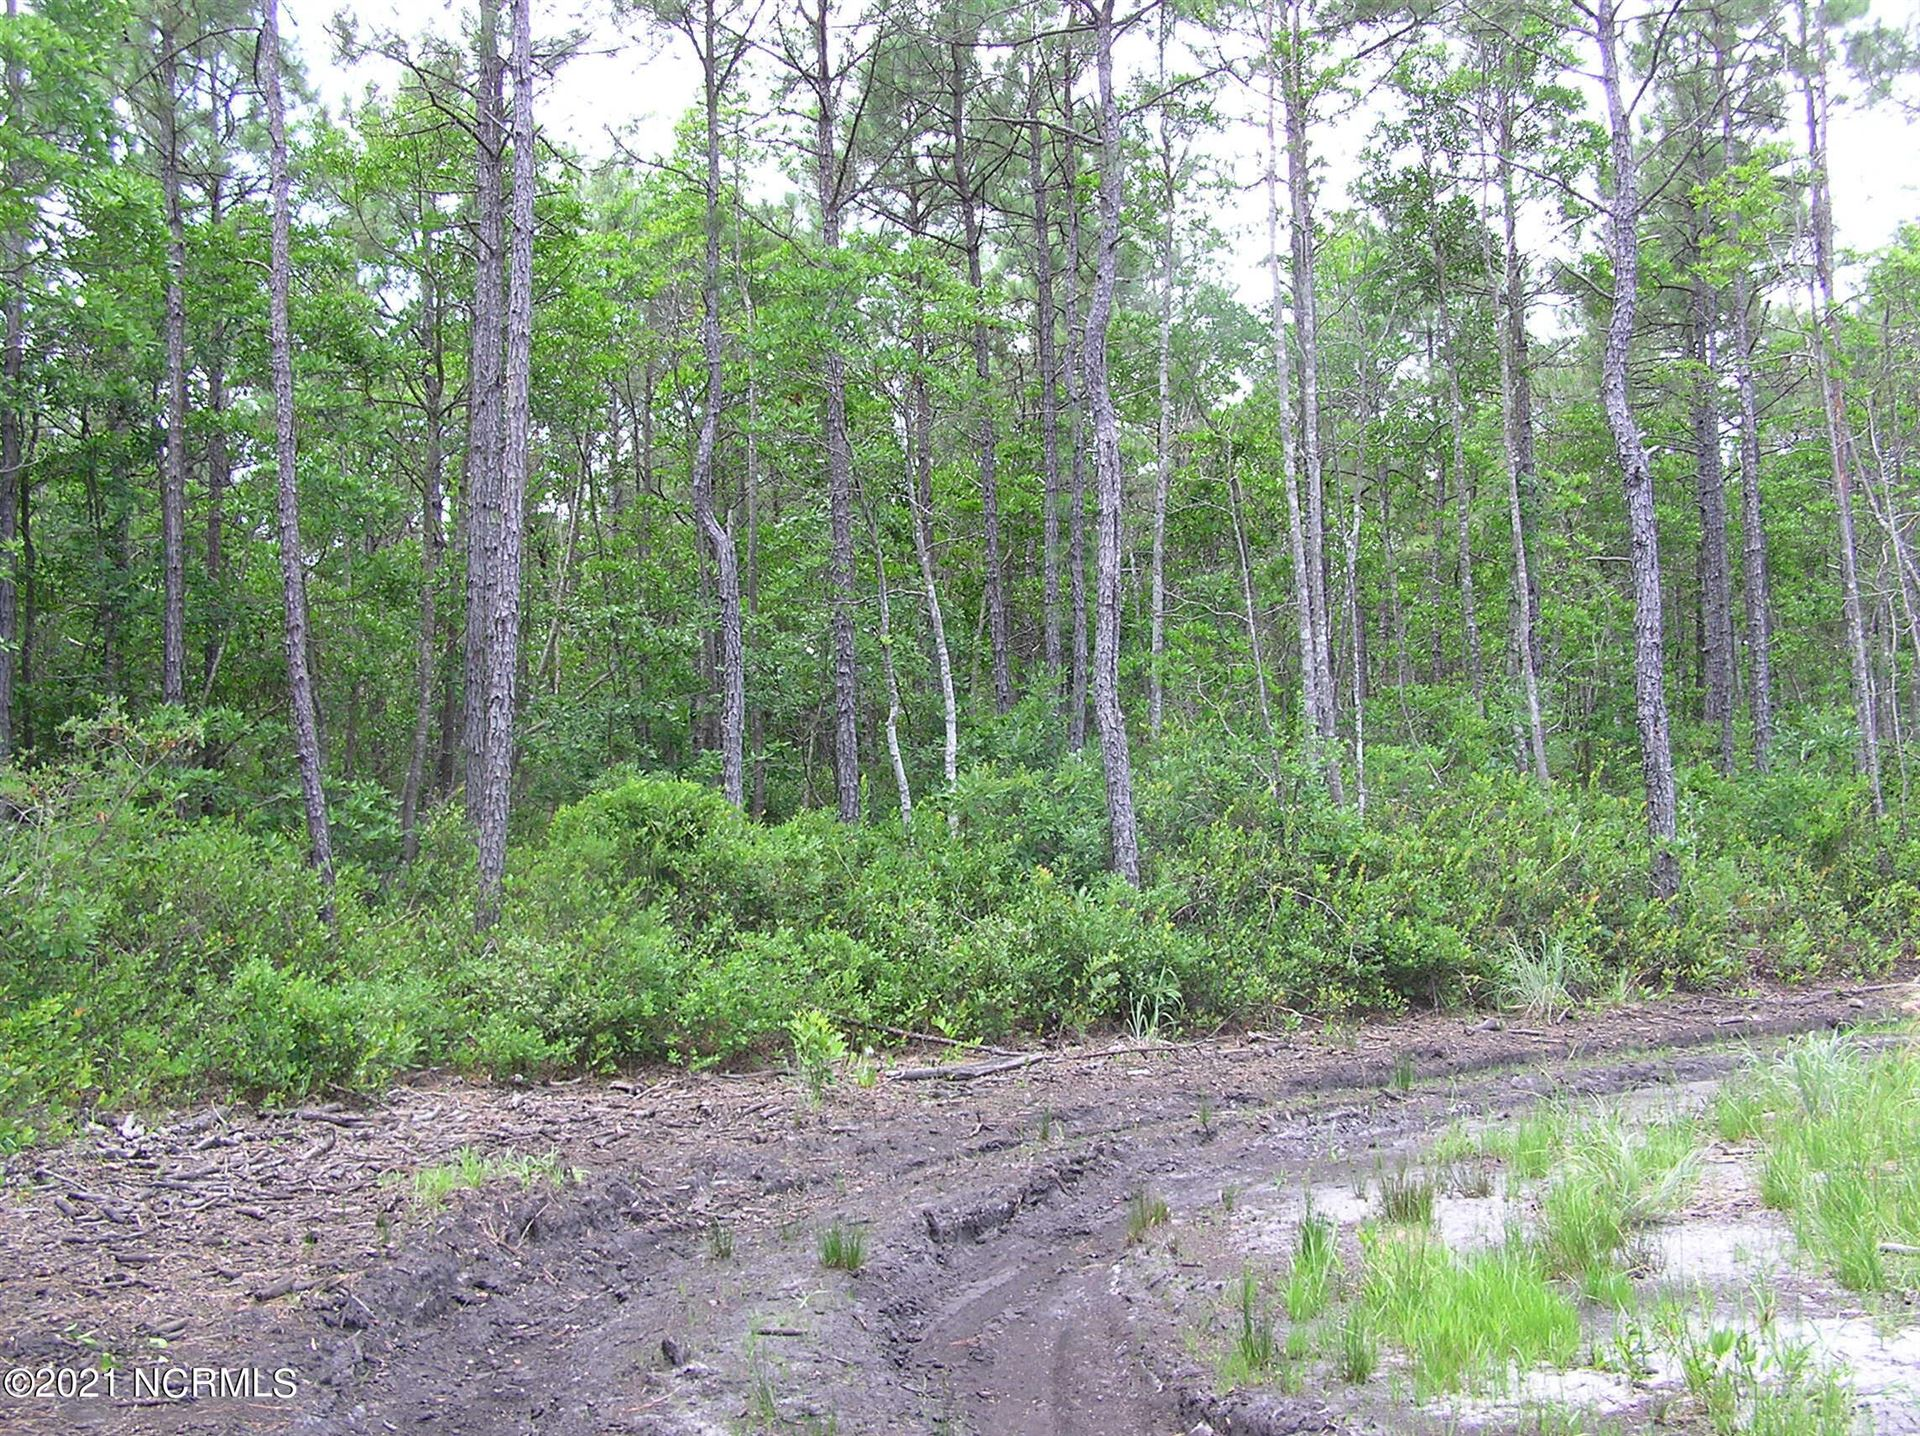 Photo of Lot150/151 Greenview Ranches, Wilmington, NC 28411 (MLS # 100262149)